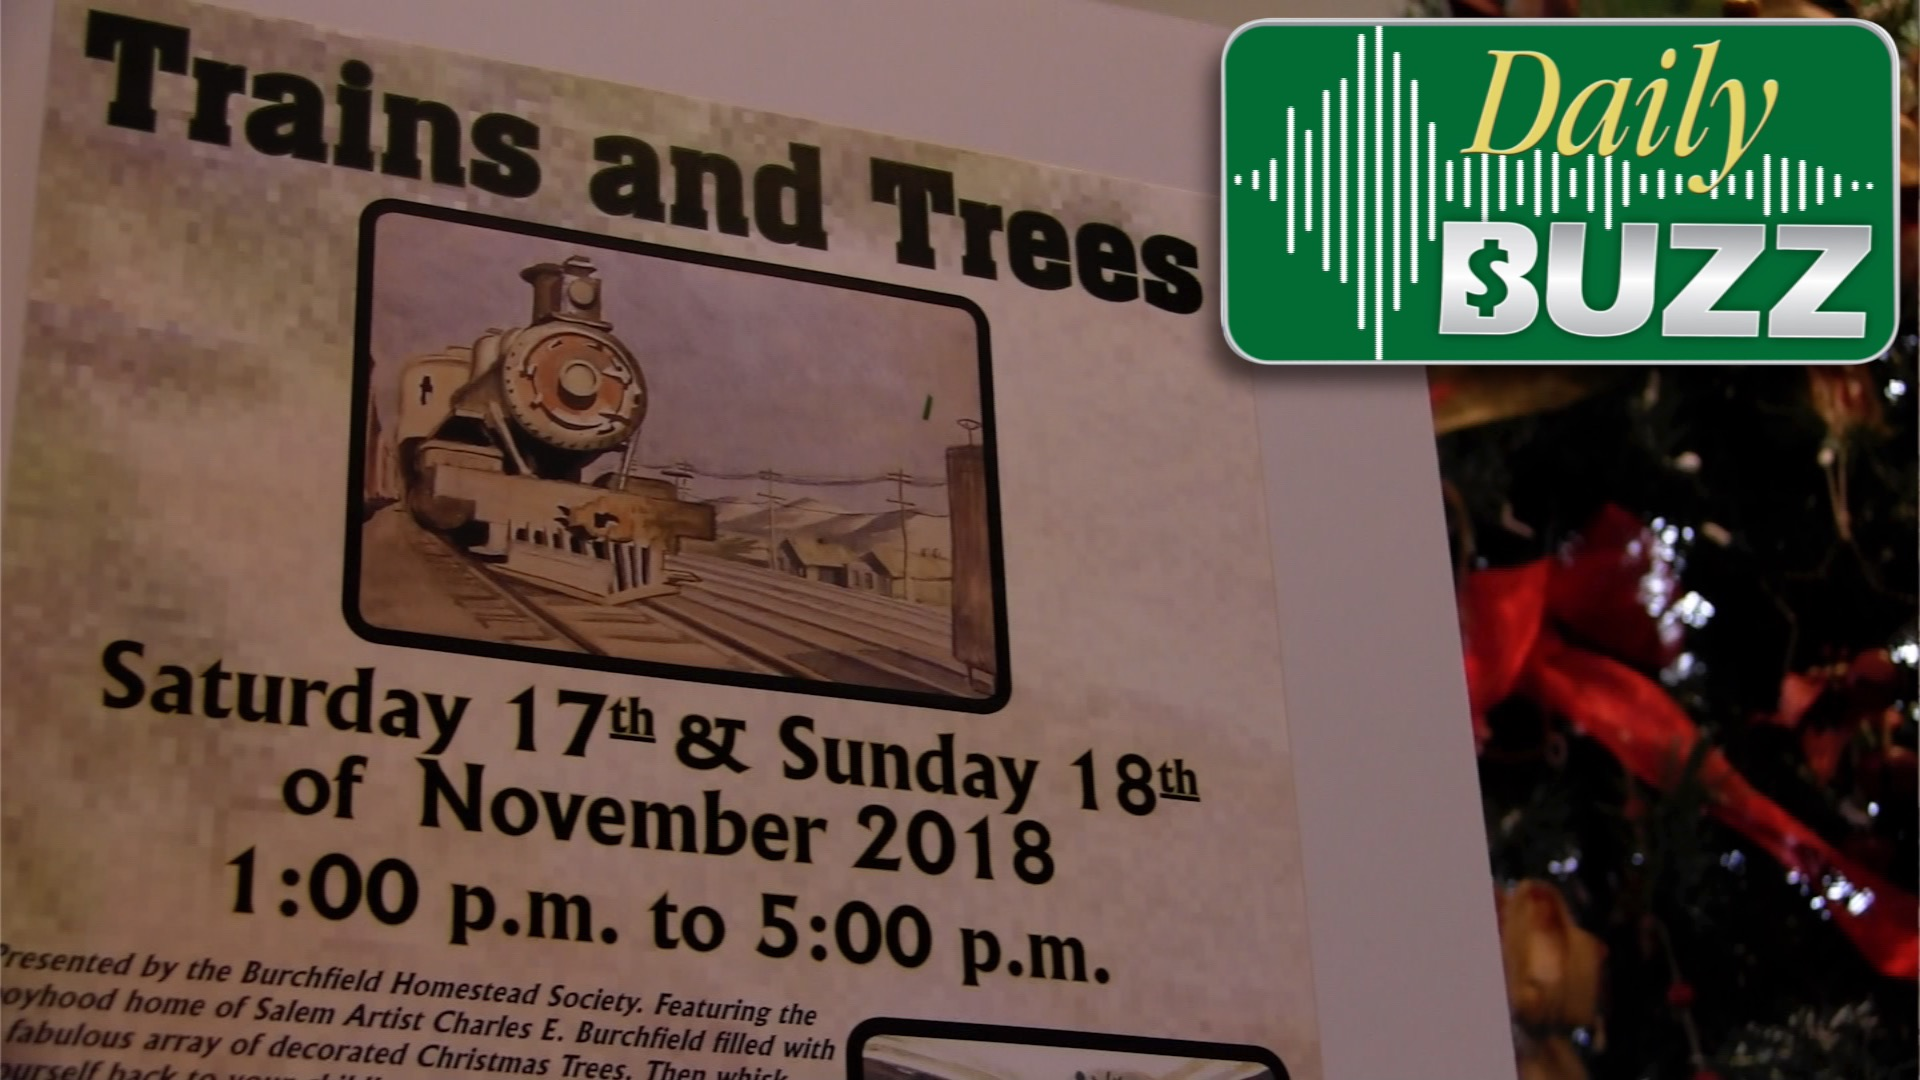 A Christmas Trees and Trains Show